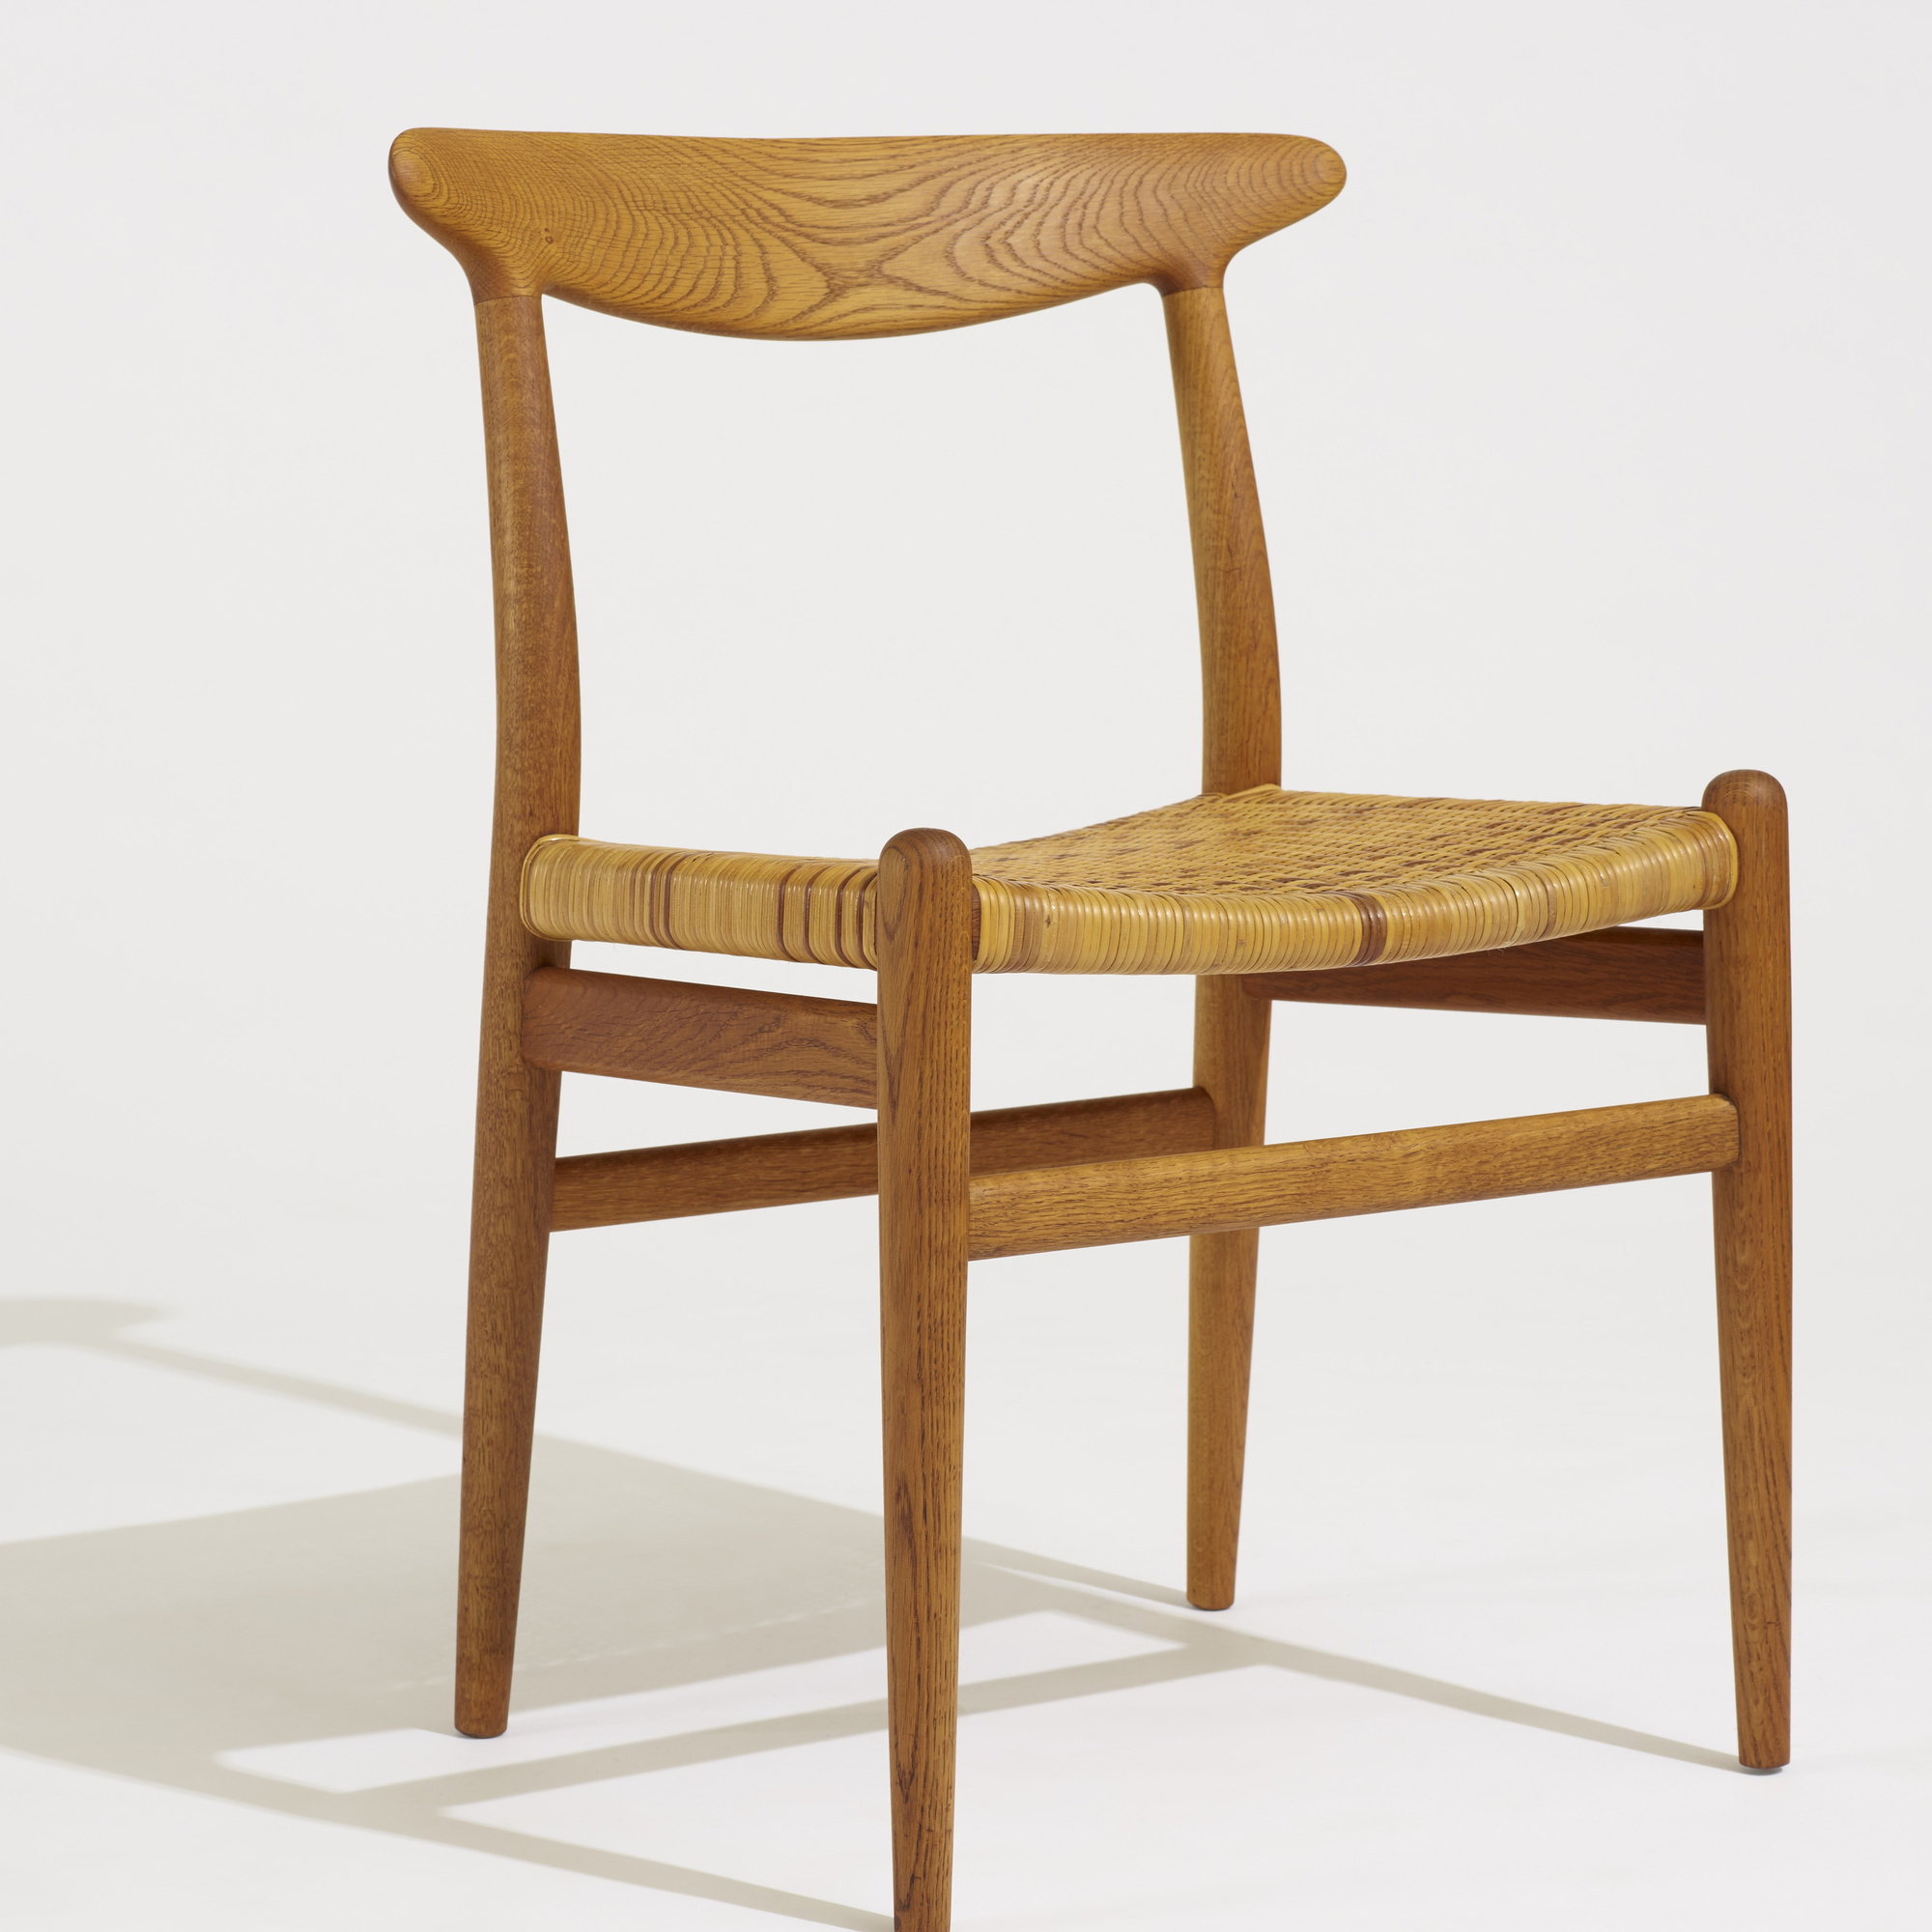 276: Hans J. Wegner / dining chairs, set of four (3 of 4)